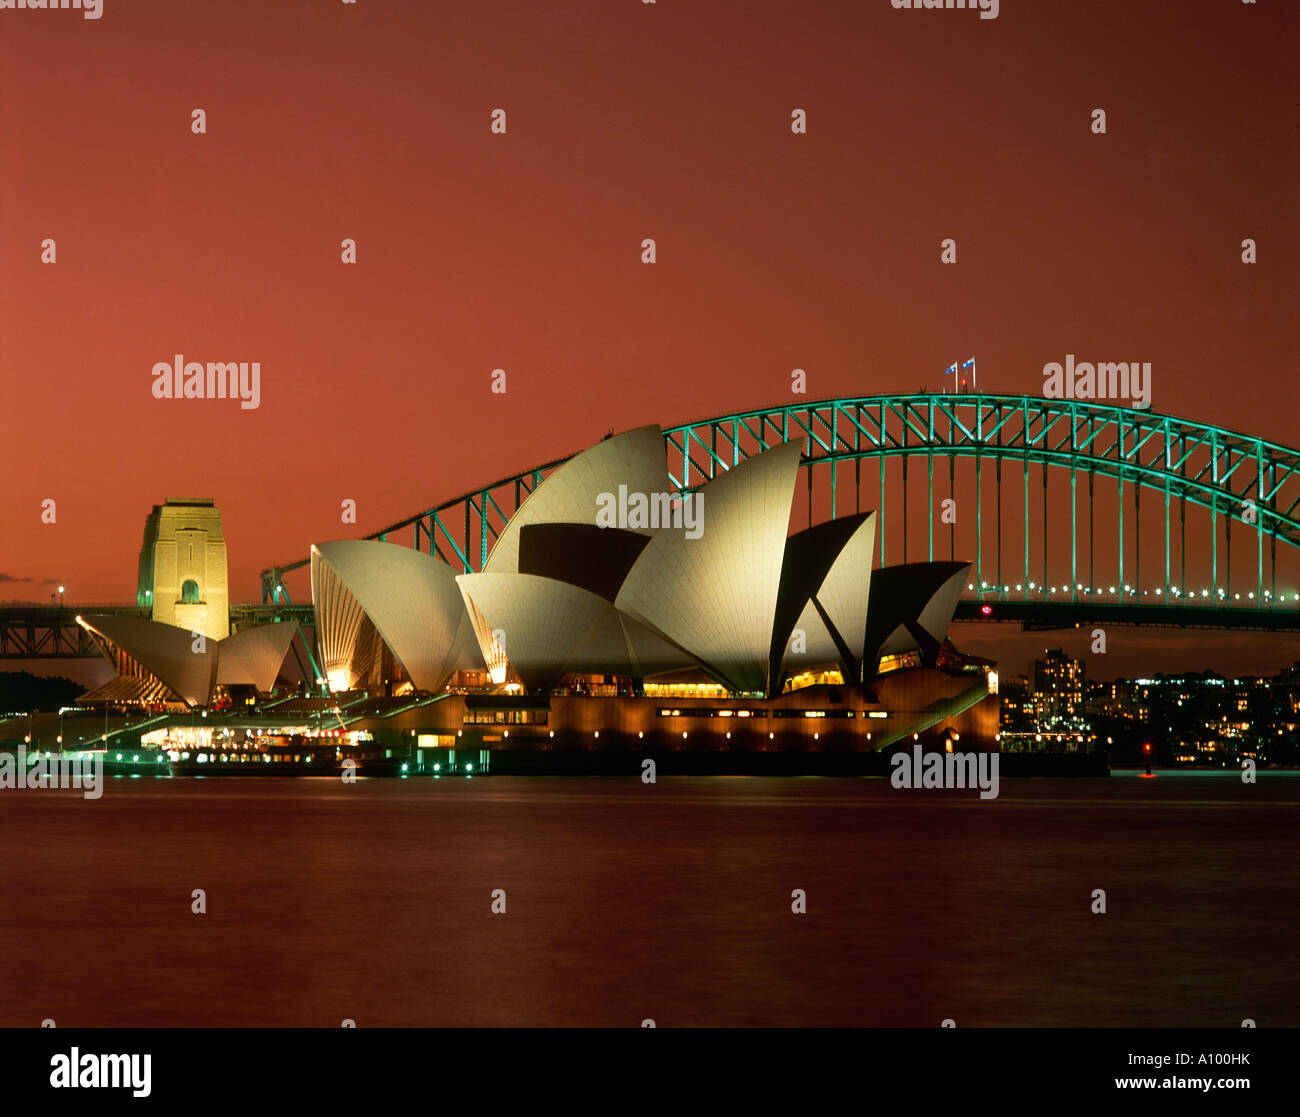 View of the Sydney Opera House designed by Jorn Utzon 1956 completed 1972 and Harbour Bridge illuminated at night - Stock Image